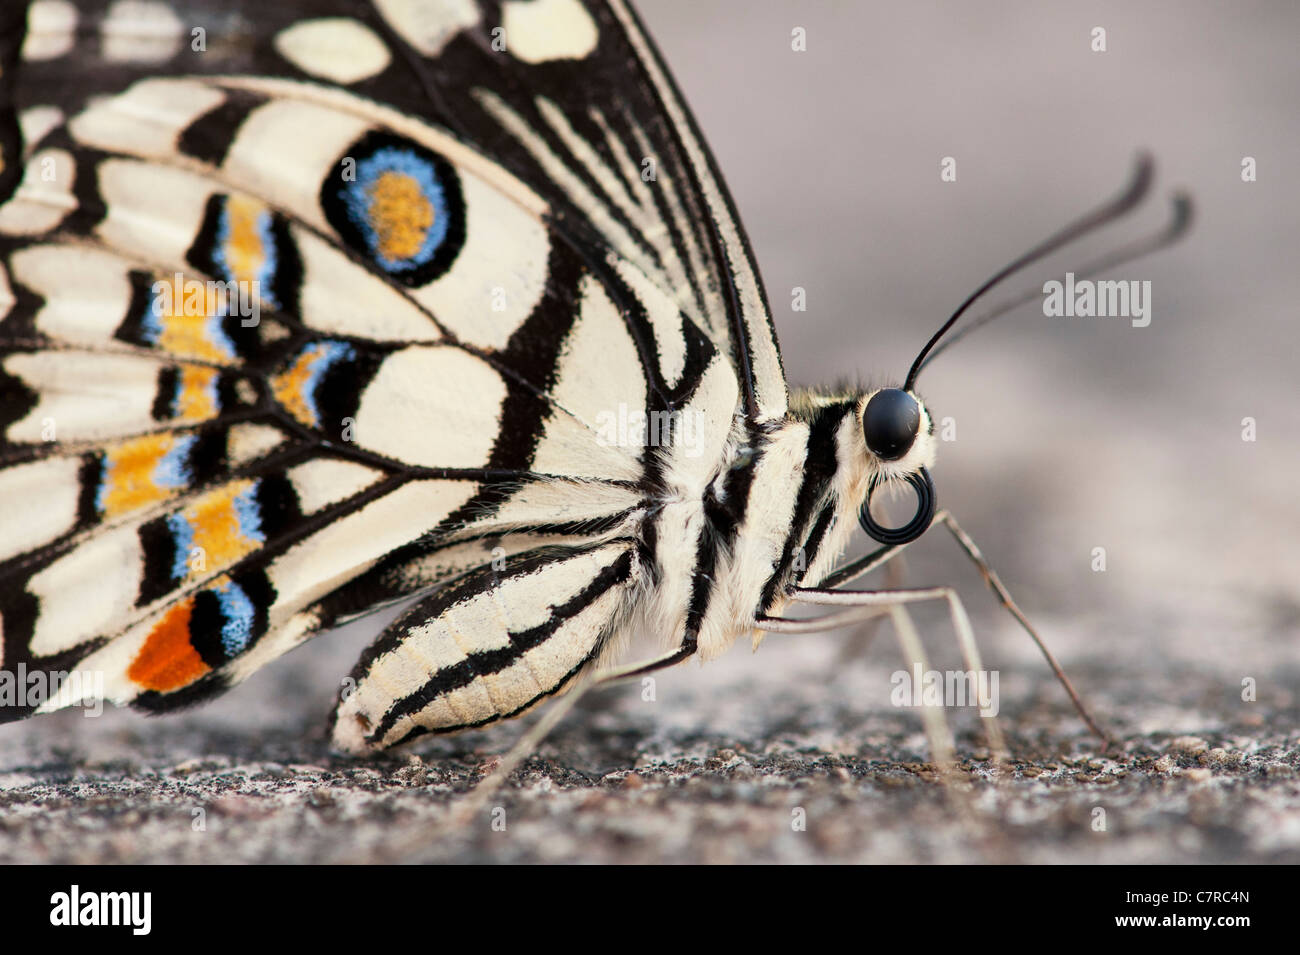 Papilio demoleus . Lime butterfly - Stock Image